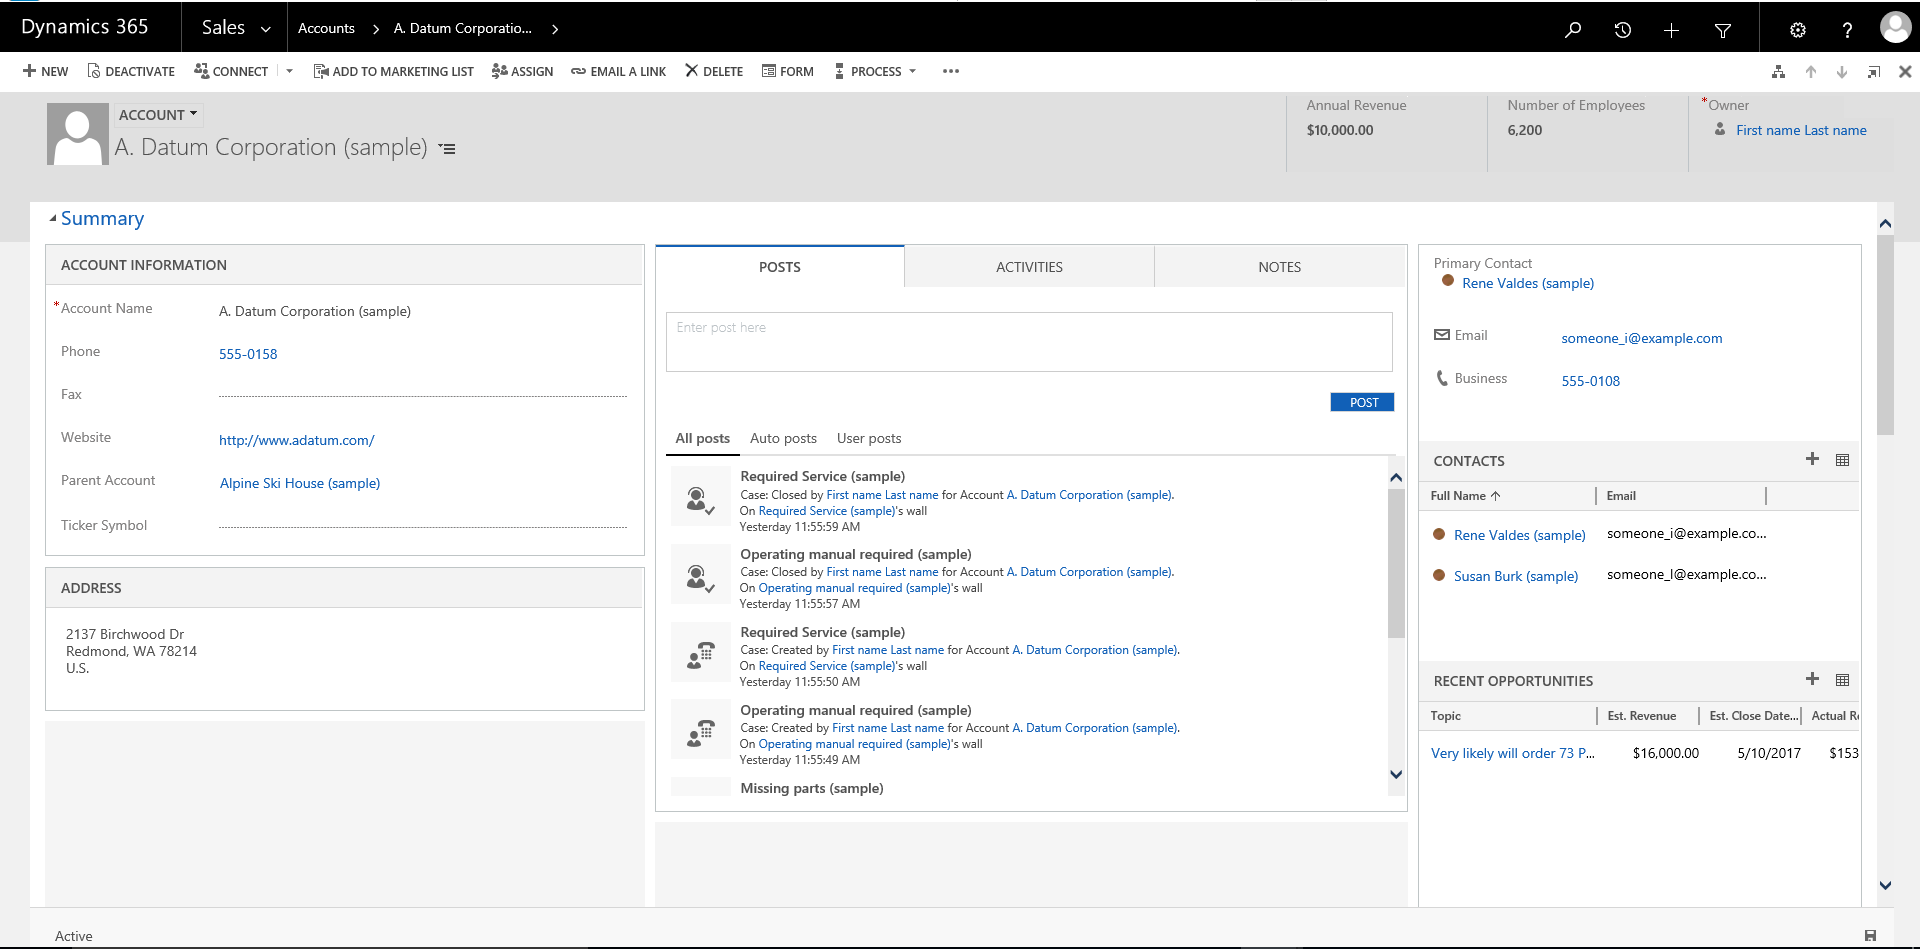 How does the new Dynamics 365 web client UI make you more